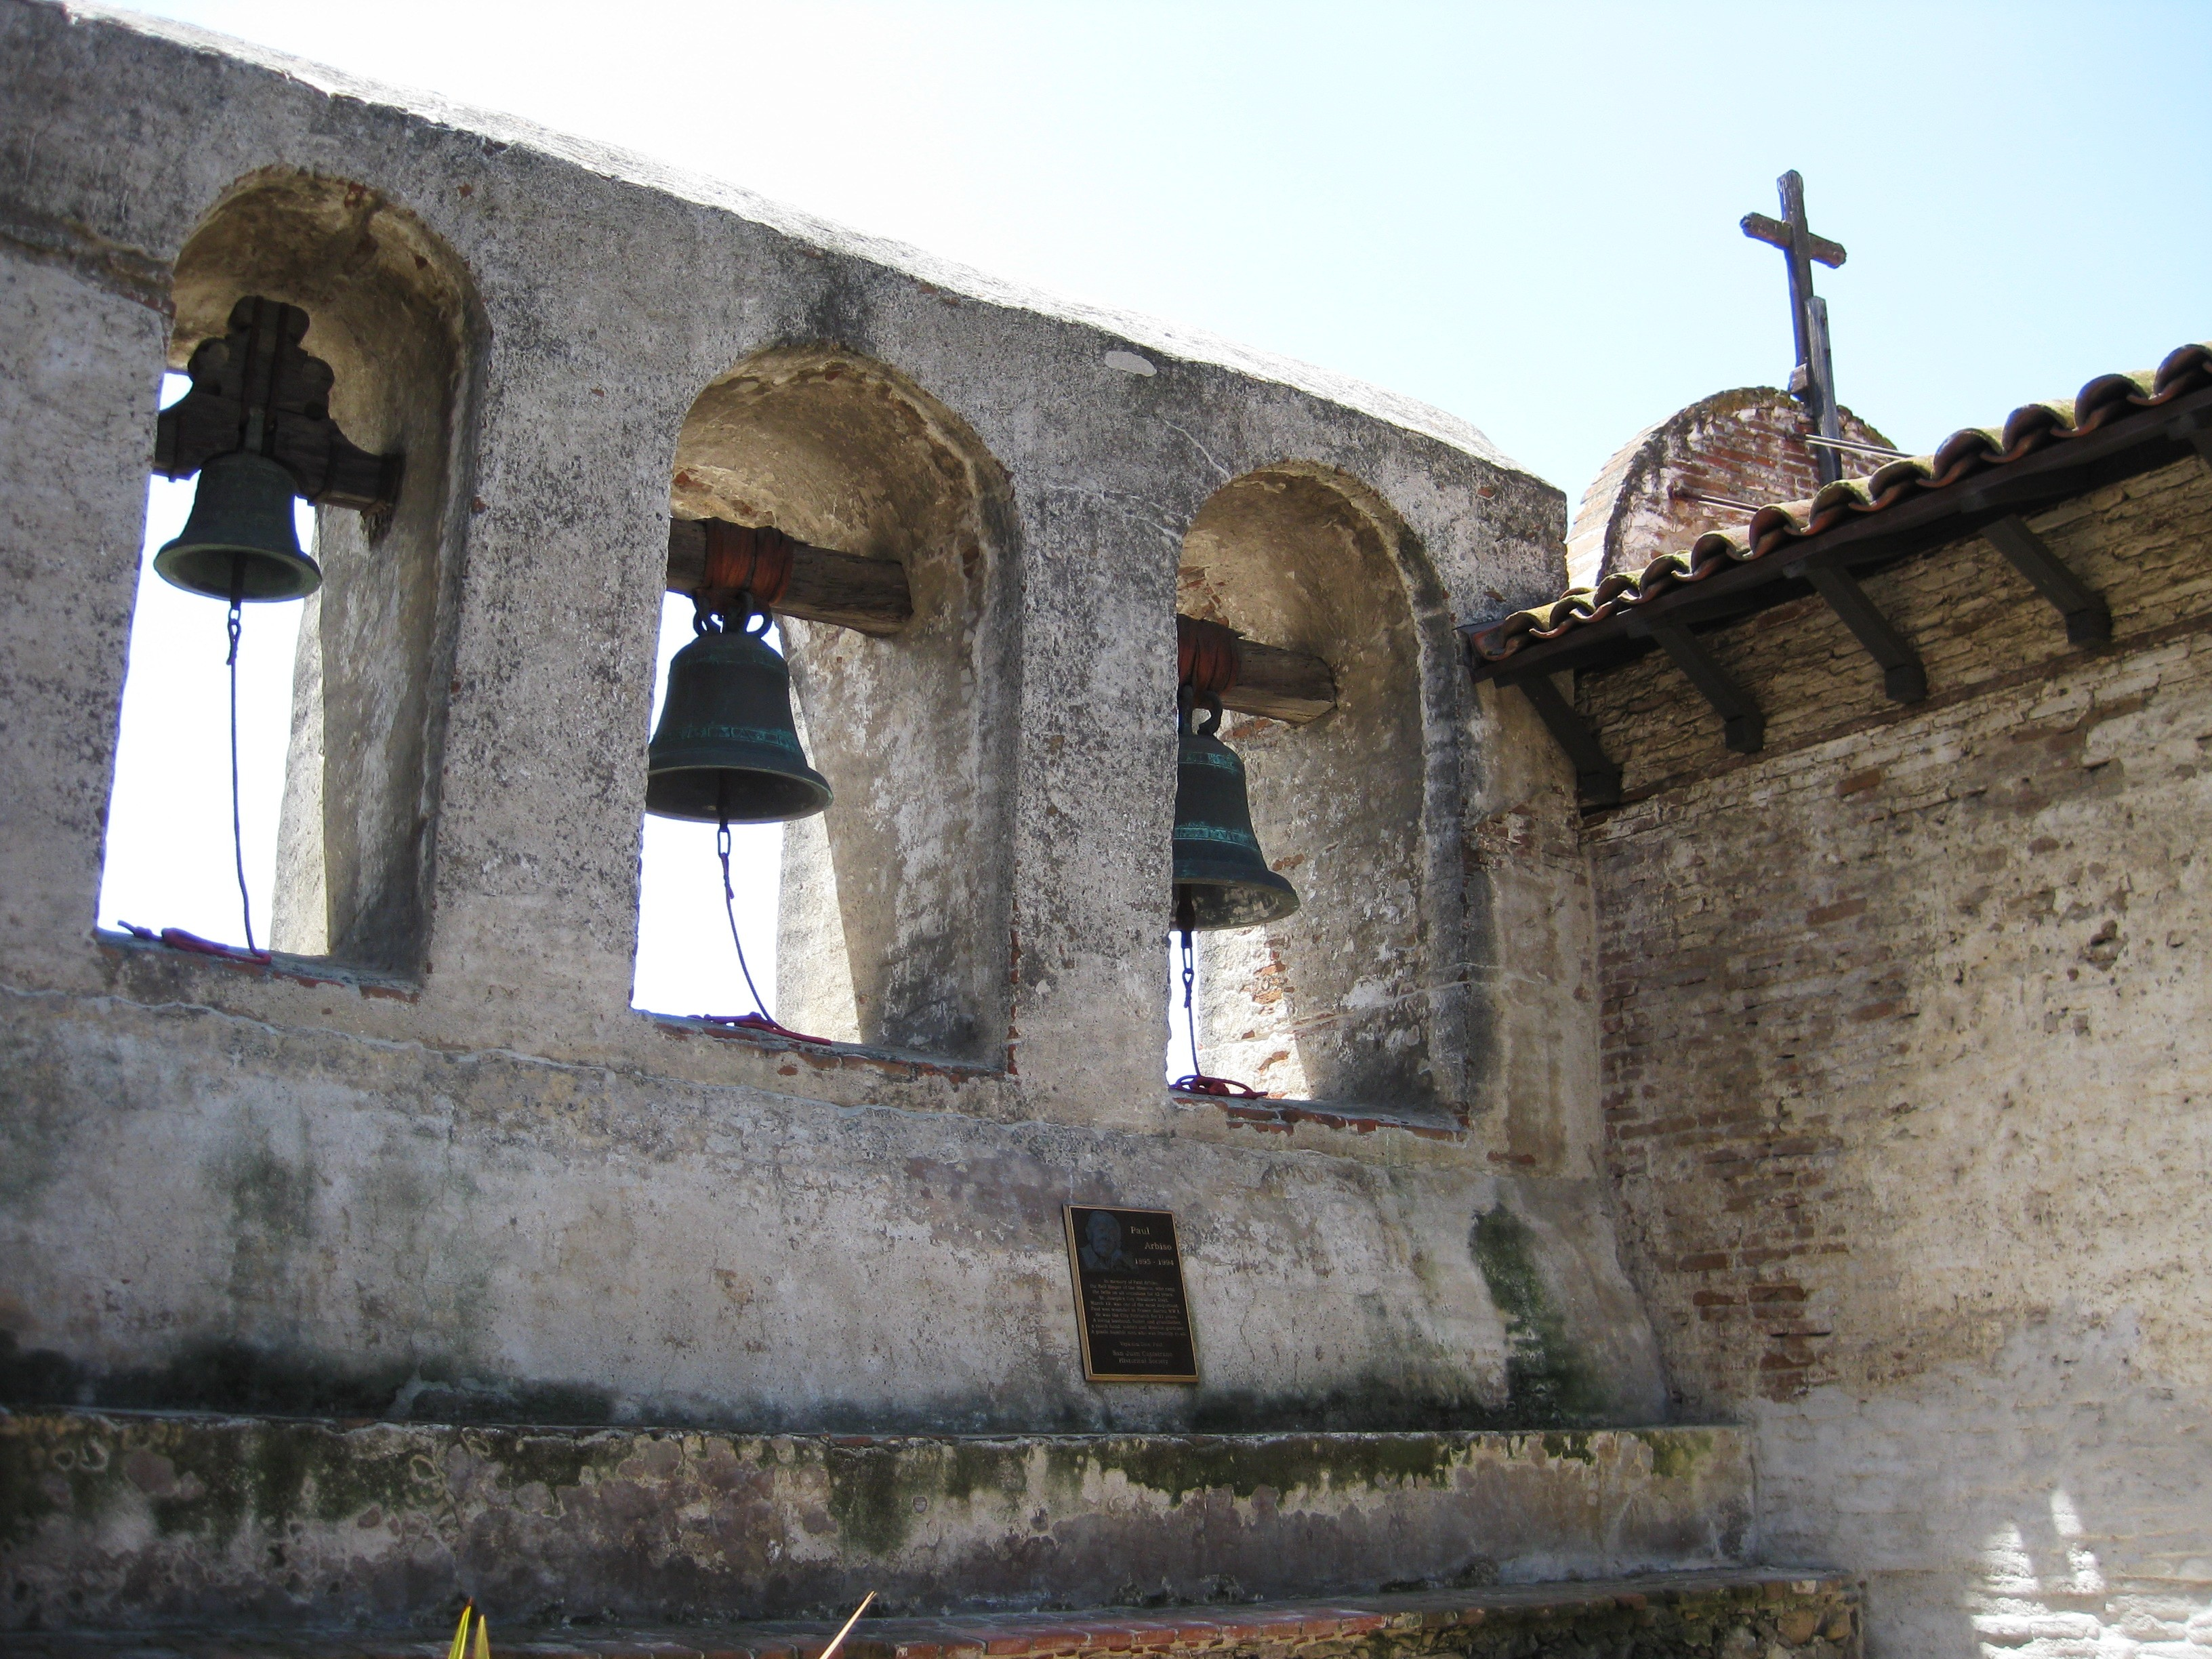 The old Mission bells